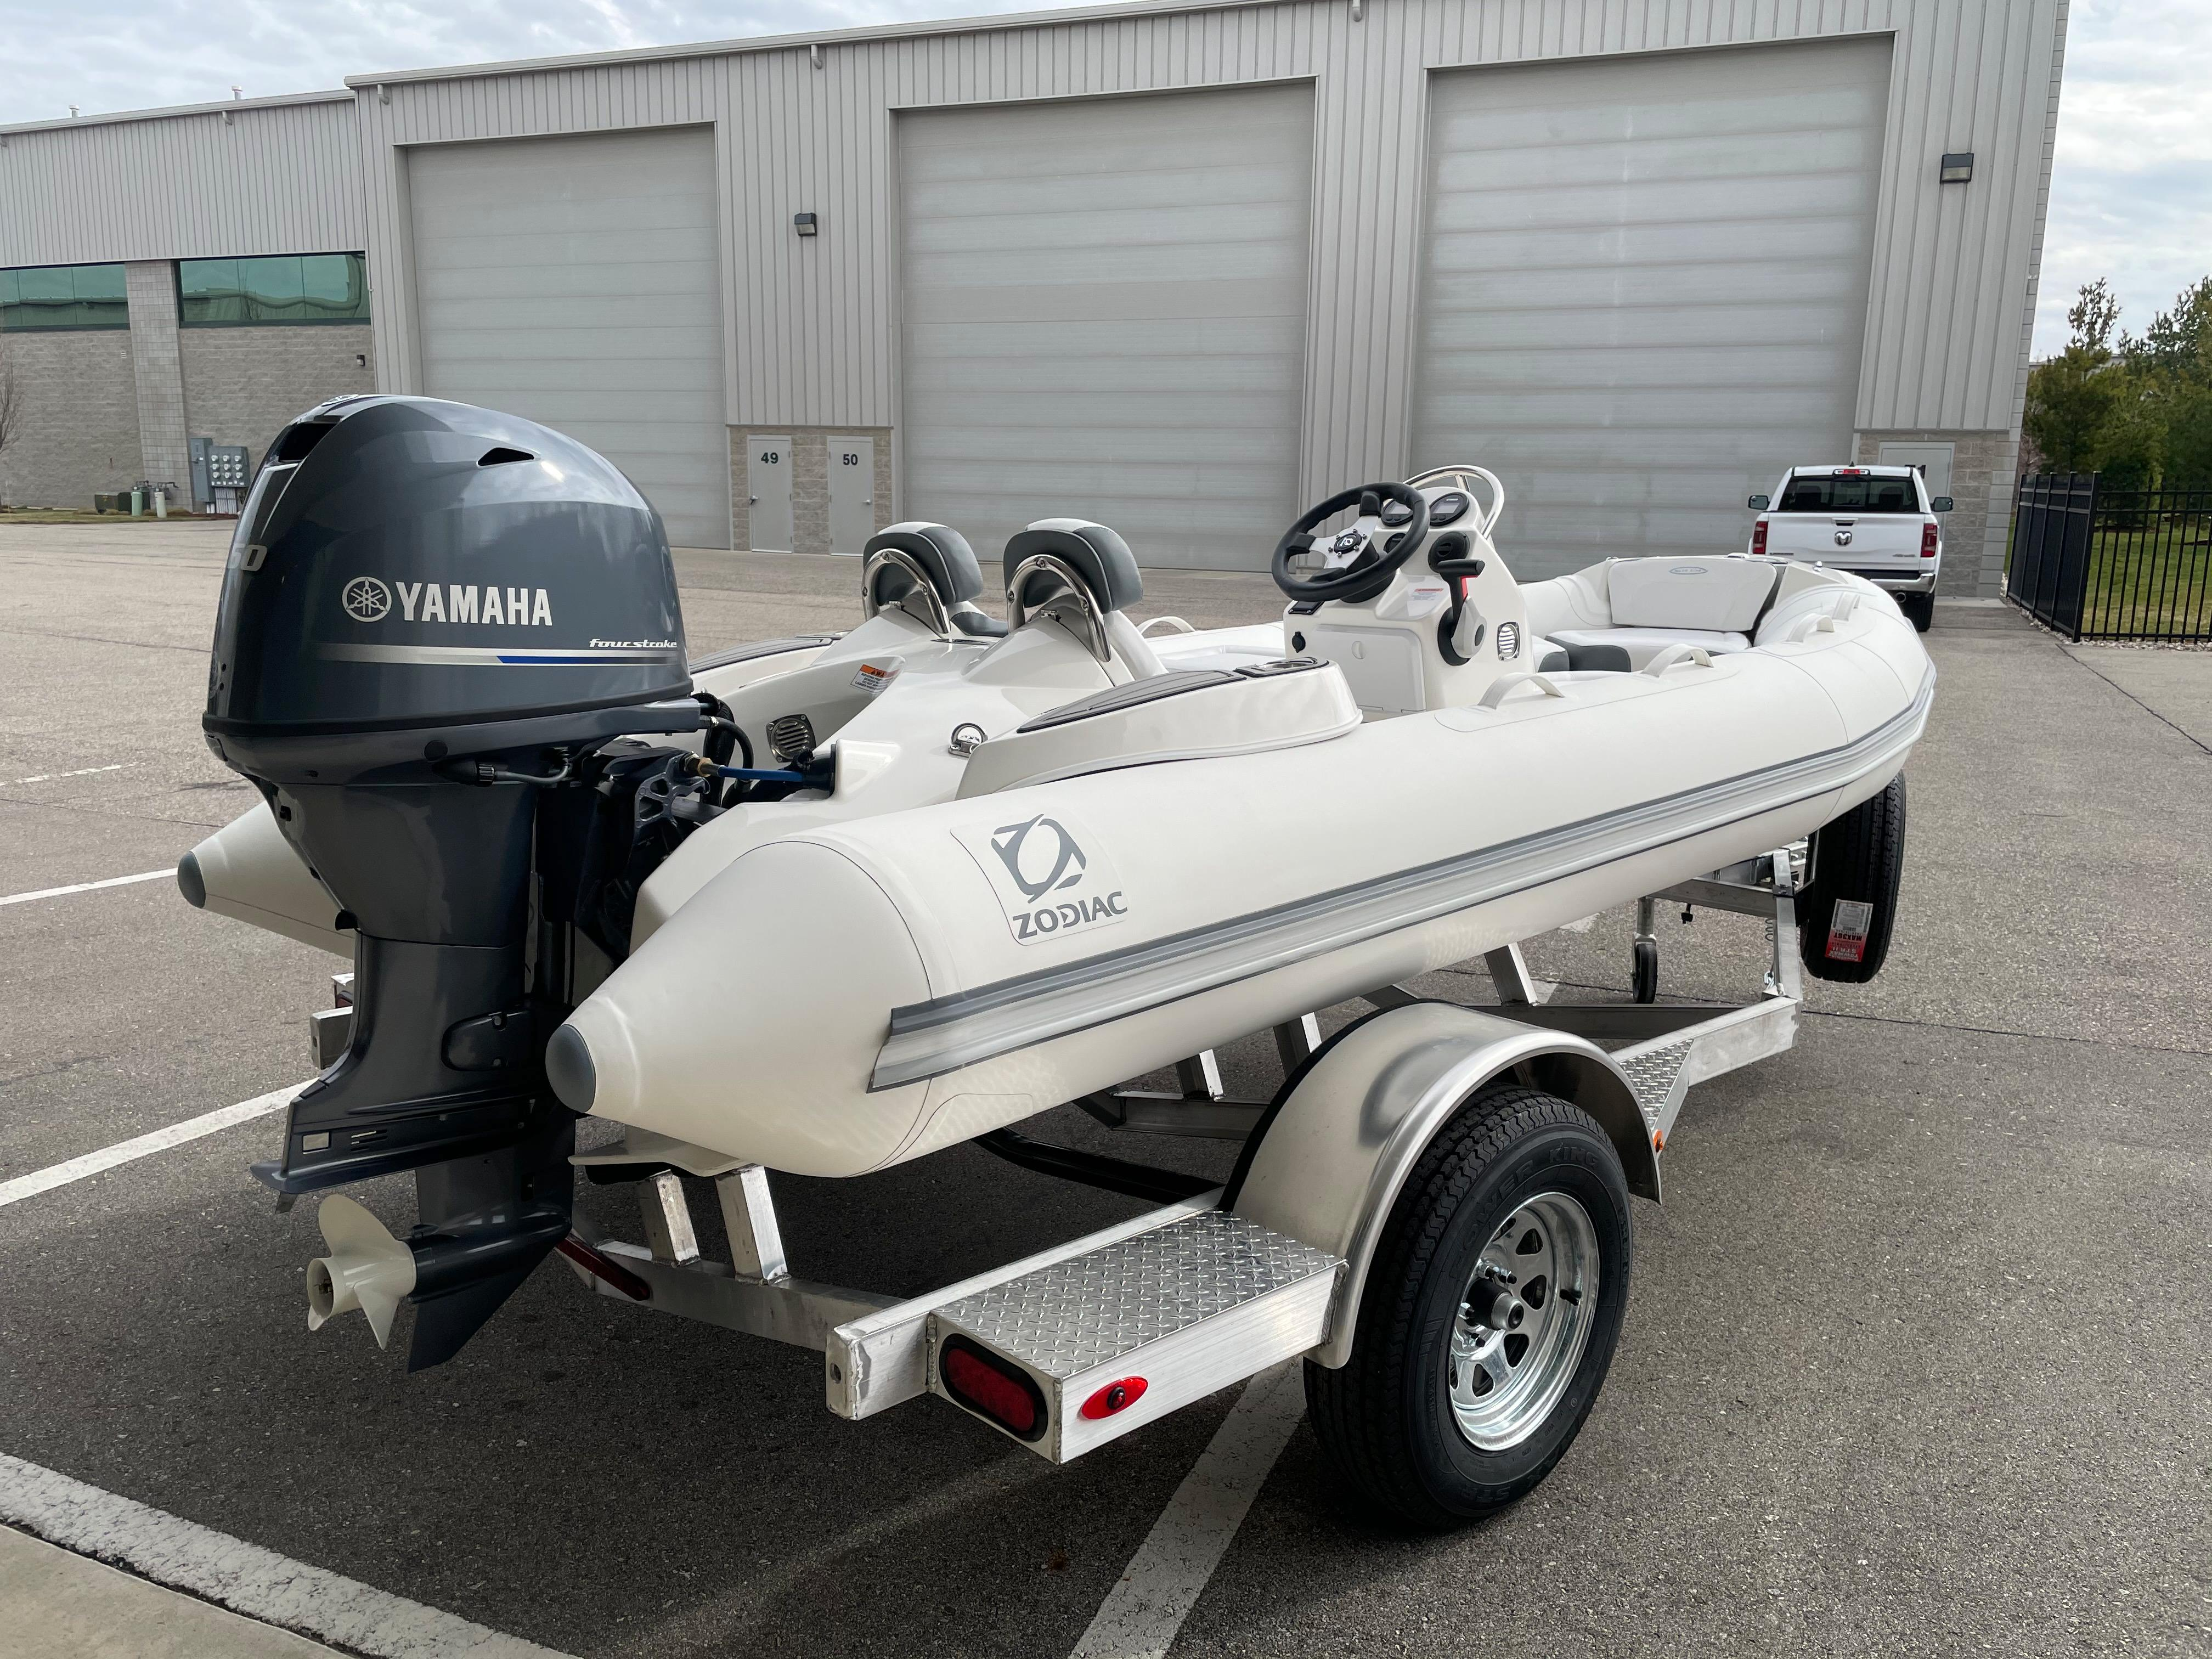 2022 Zodiac Yachtline 440 Deluxe NEO GL Edition 60hp On Order, Image 4